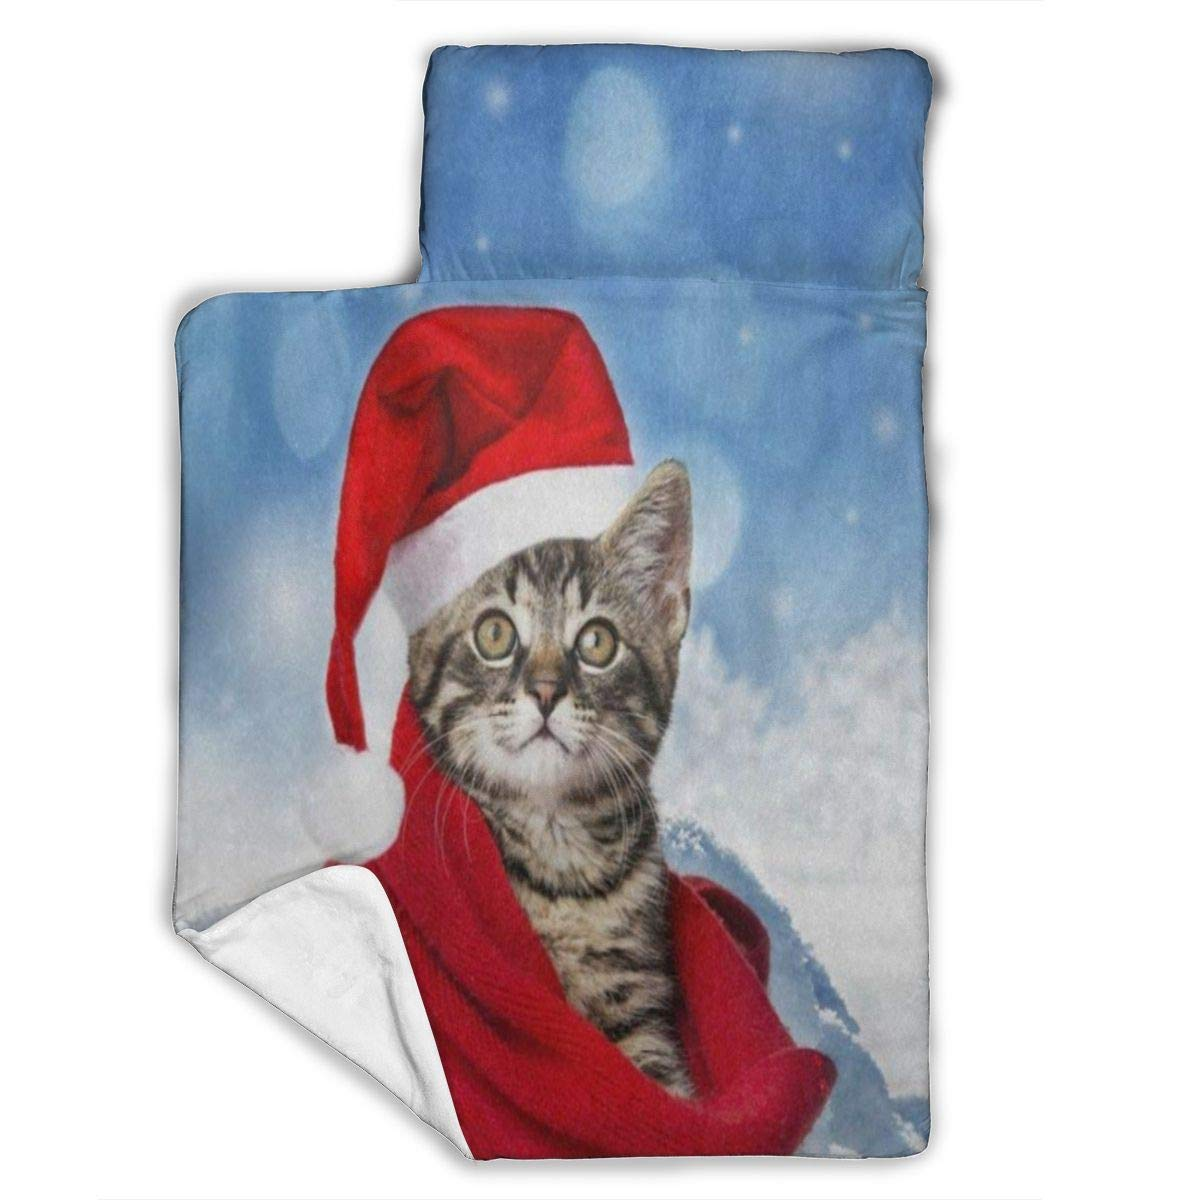 """Kids Sleeping Bag Easy Carry Cute Cat with Red Santa Claus Cap Christmas Unique Soft Flannel Rolled Nap Mat with Pillow for Preschool Daycare Kindergarten Daycare 50""""x20"""""""